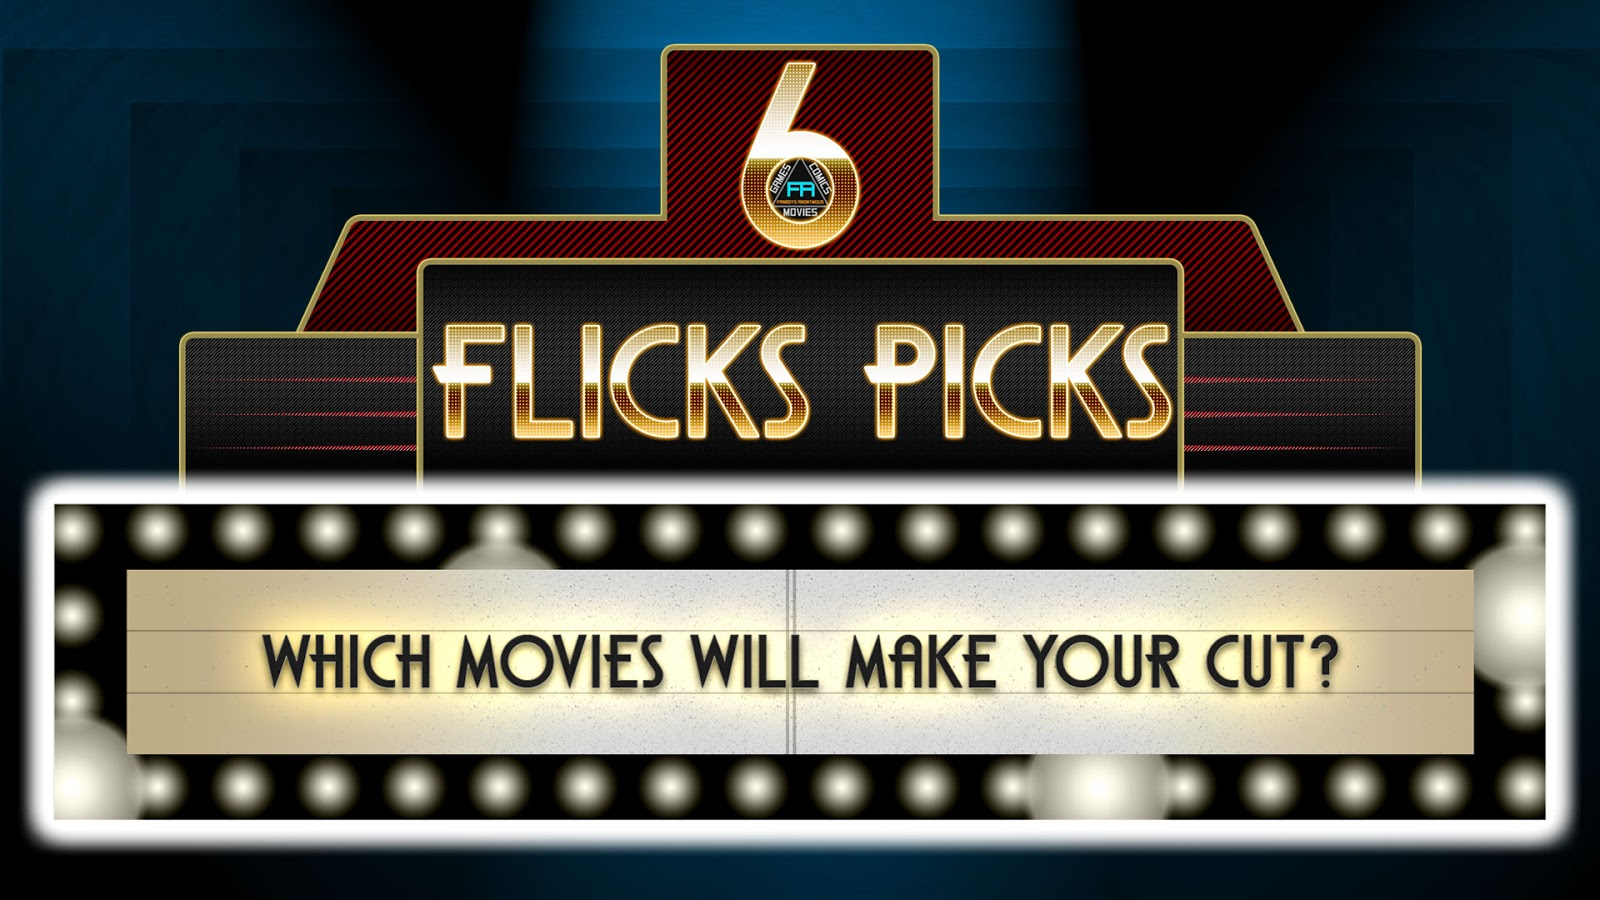 What movies are coming out April 2016 6 Flicks Picks